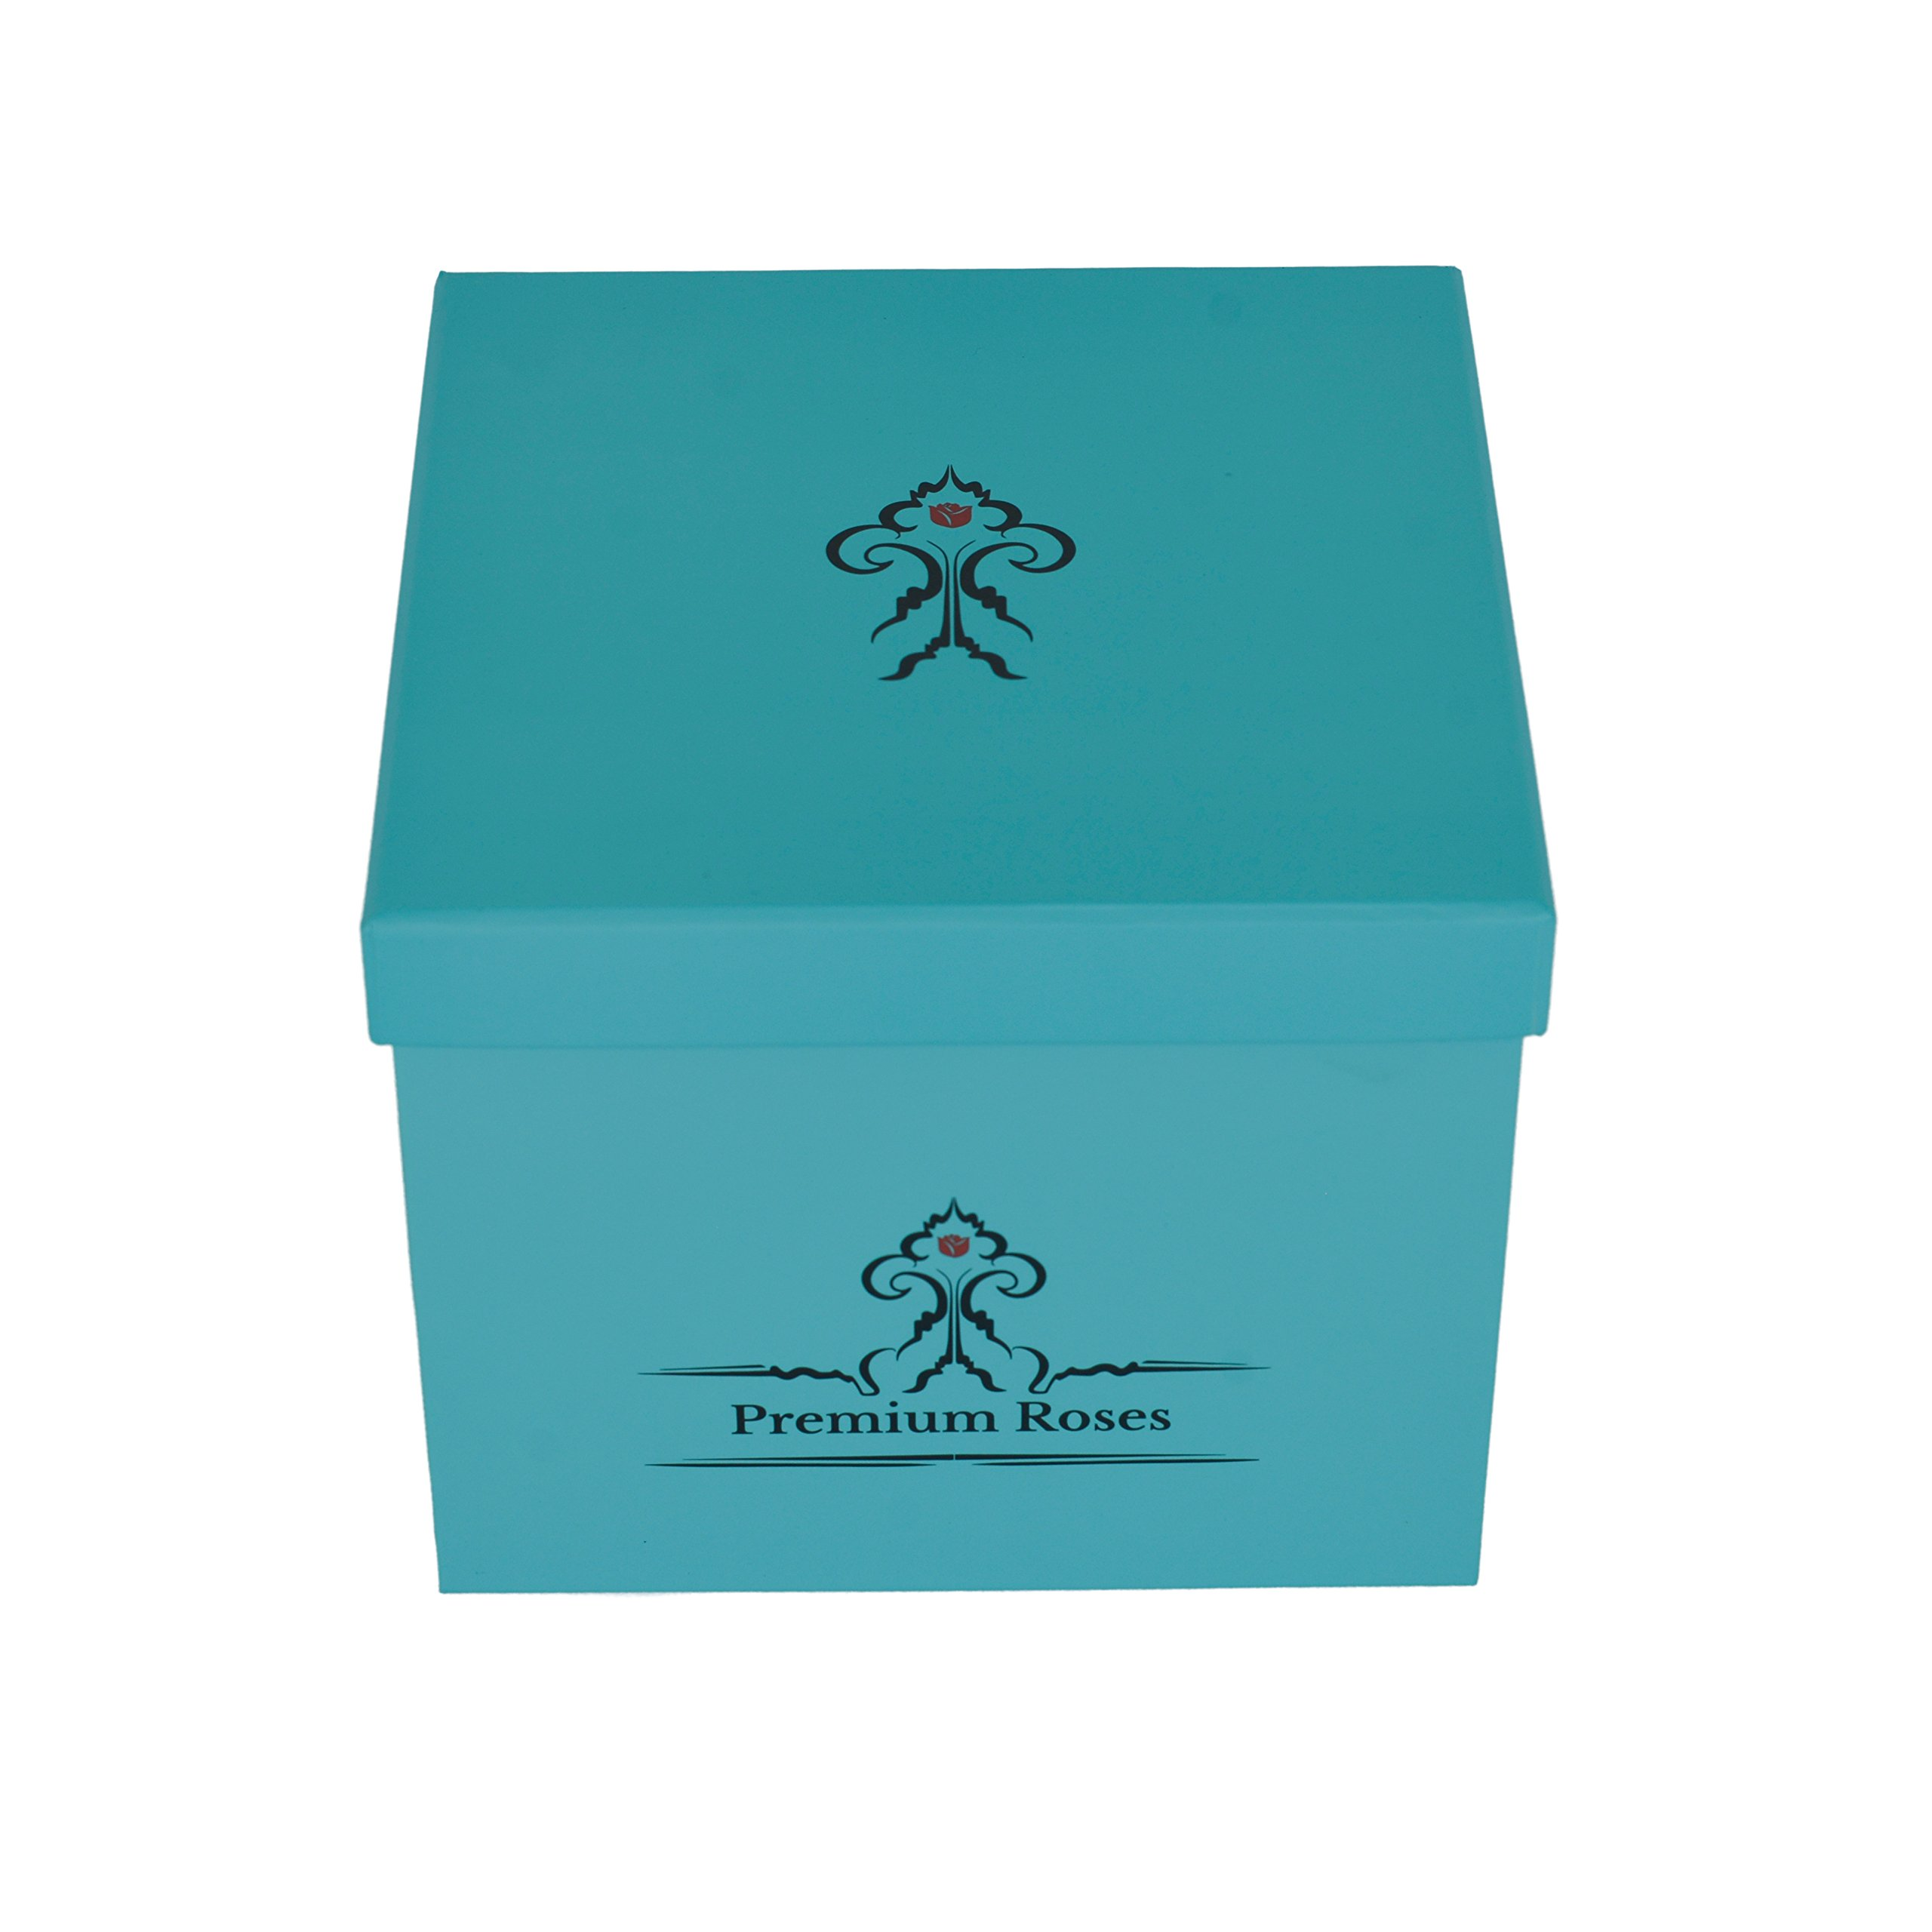 Premium Roses | Model Turquoise| Real Roses That Last 365 Days | Roses in a Box| Fresh Flowers (Blue Box, Medium) by Premium Roses (Image #7)